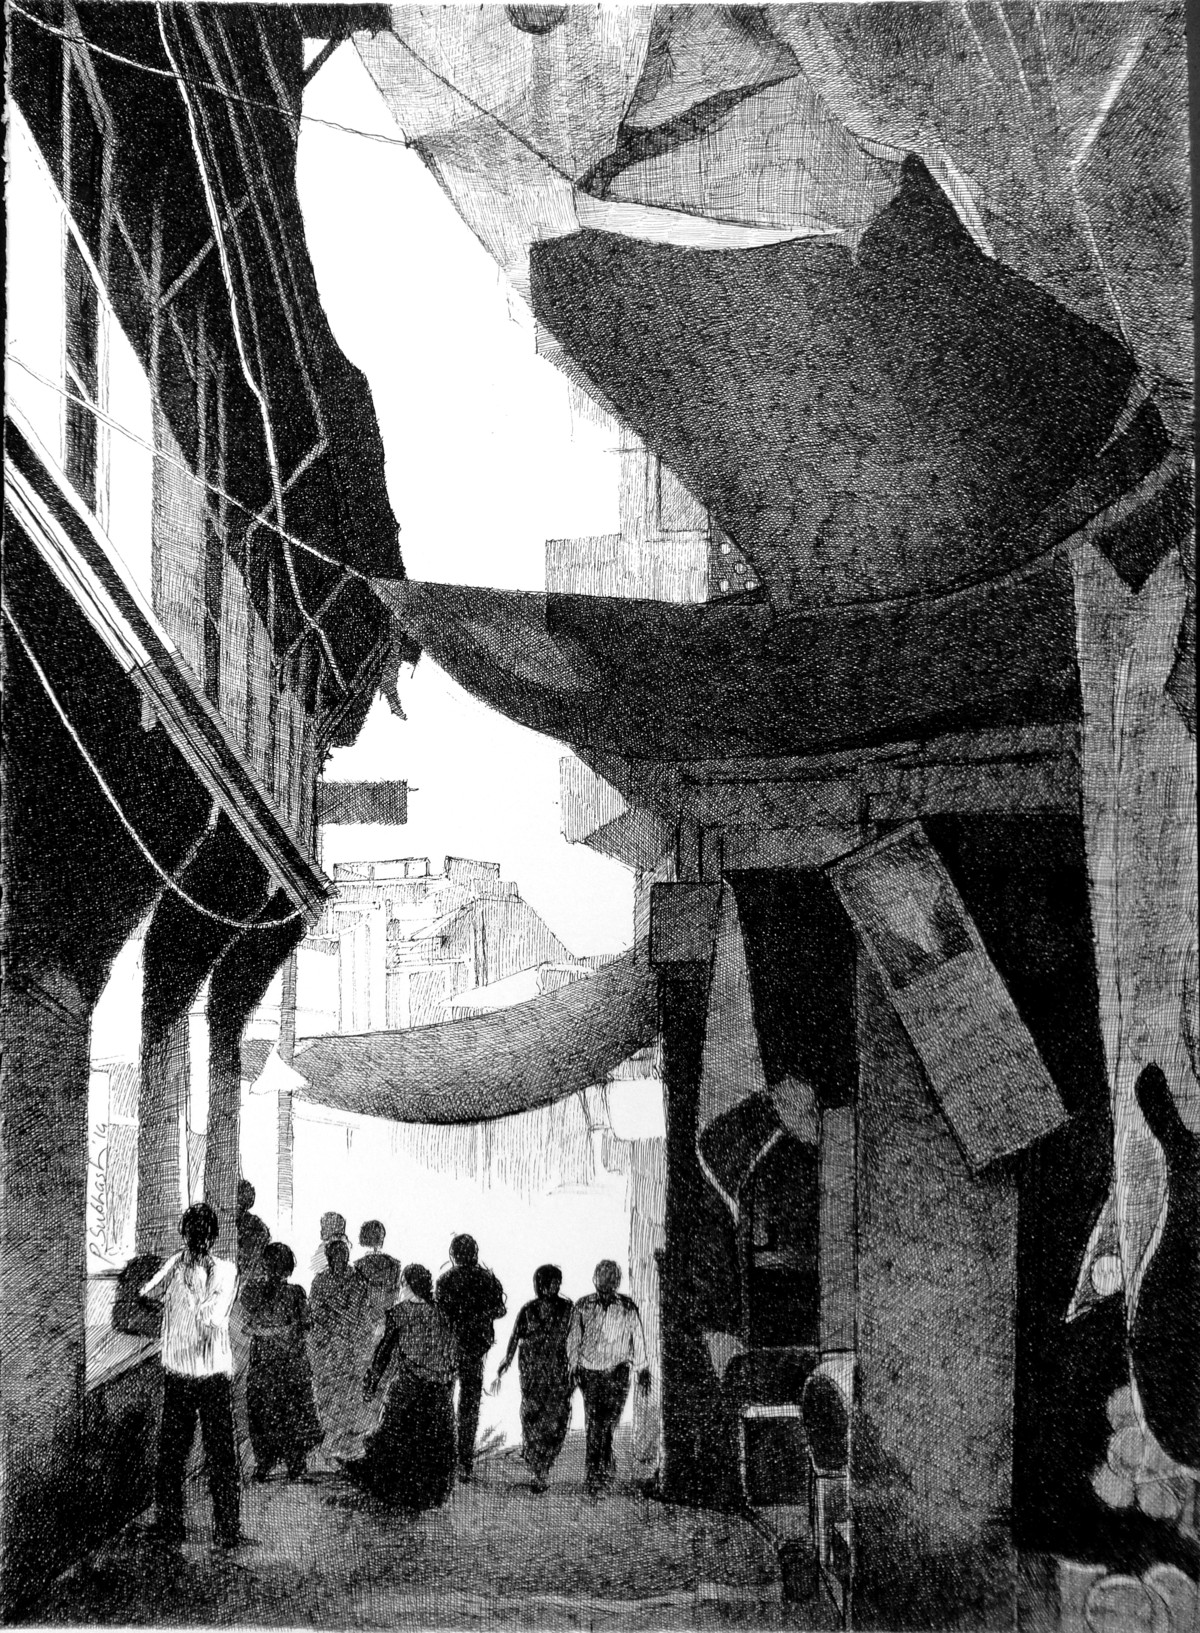 Dakor Street 1 by Subhash Parmar, Illustration Drawing, Ink on Paper, Gray color